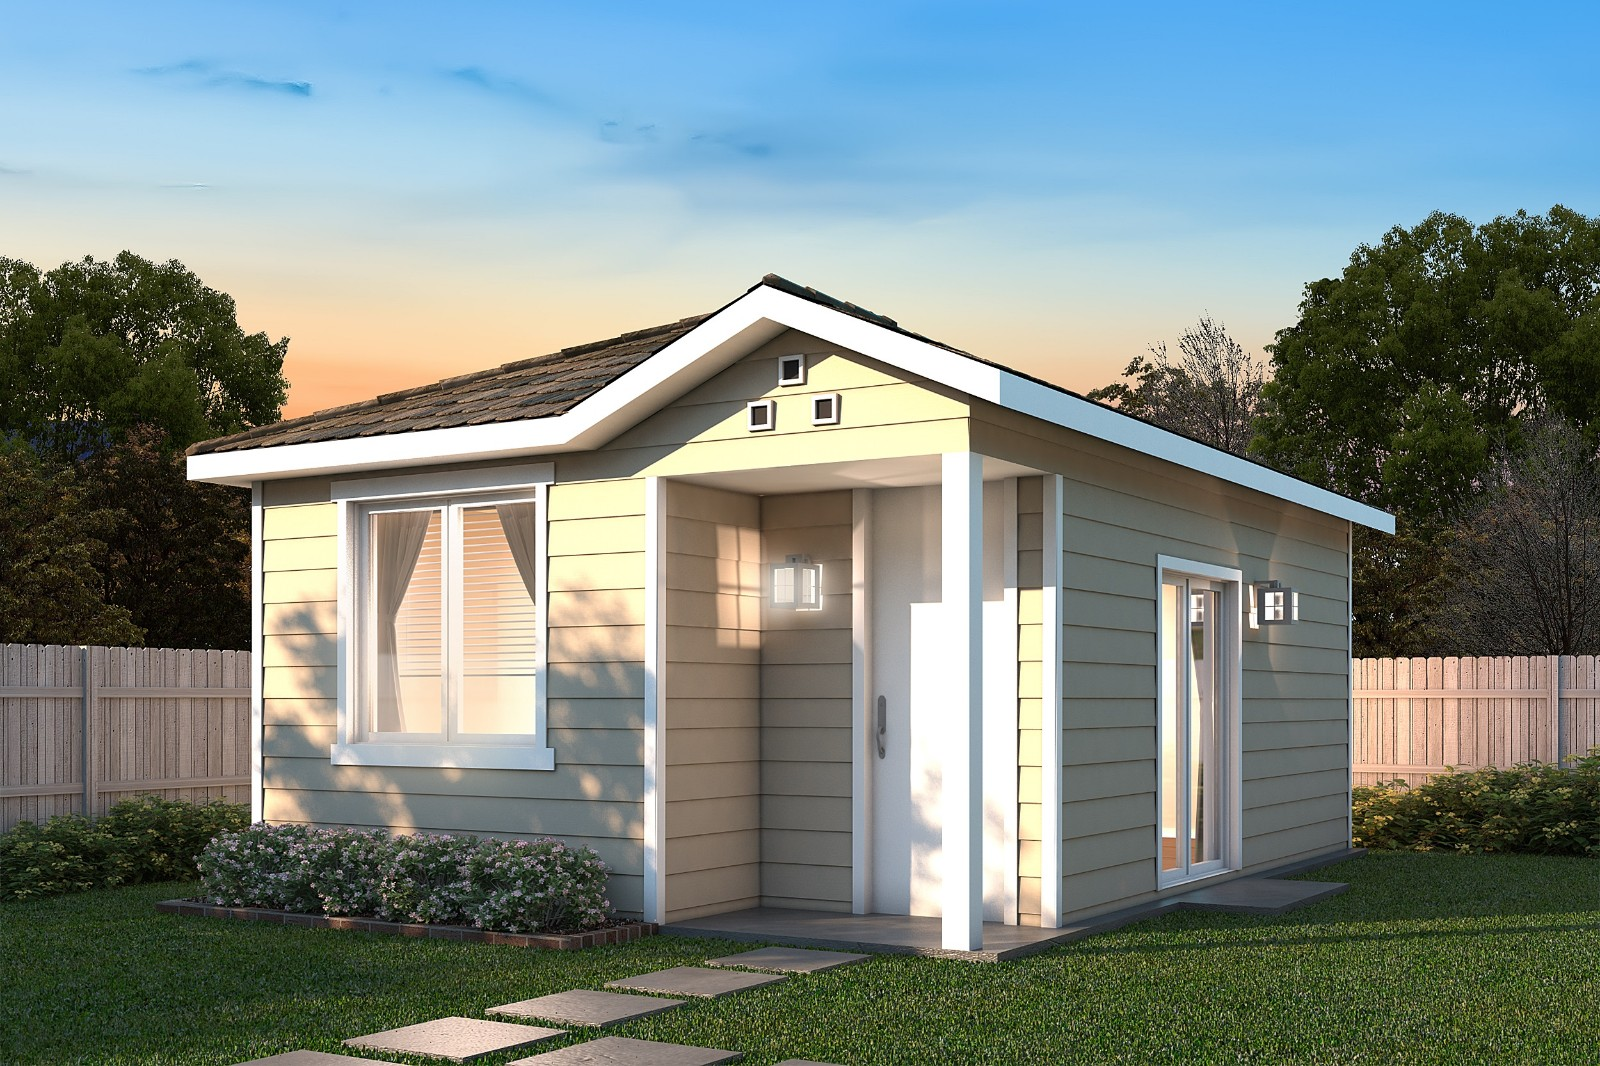 37.8 m2 Affordable Prefab Tiny house